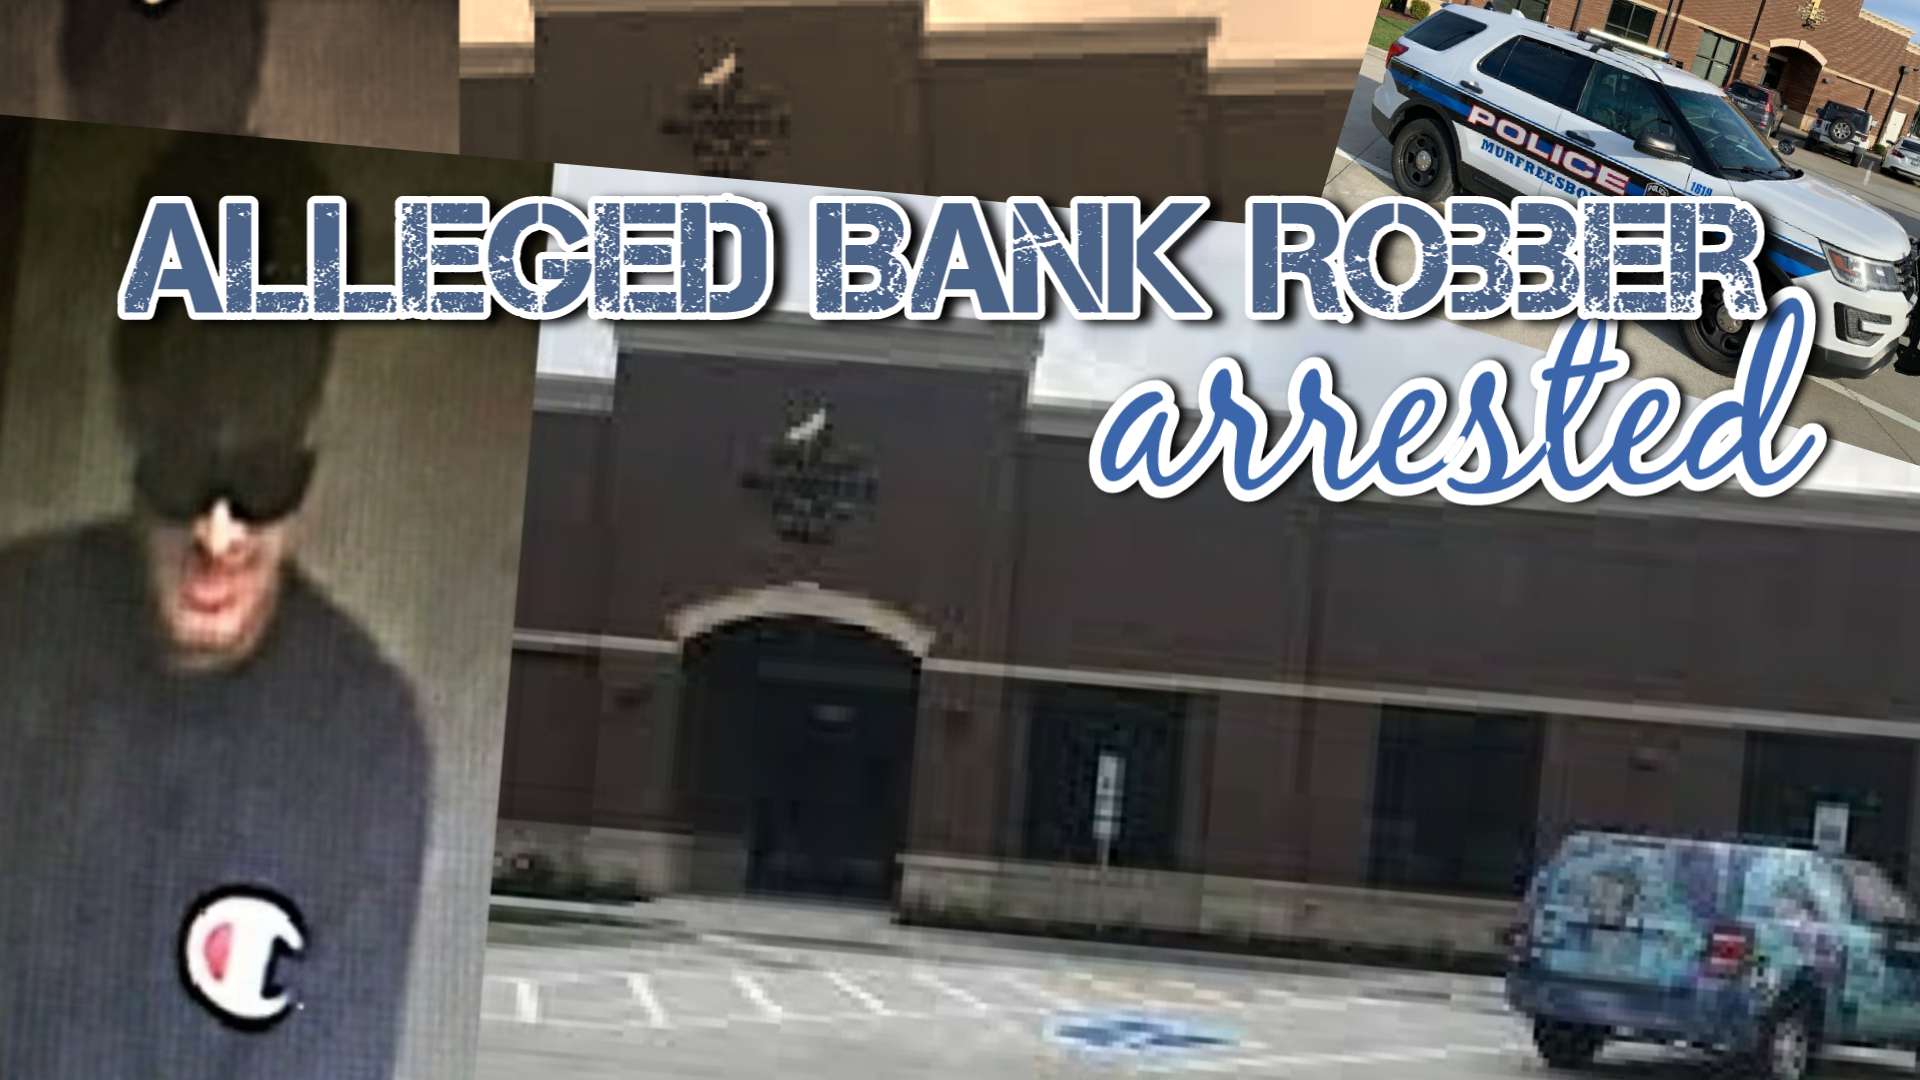 MPD Arrests Bank Robber Within 1-Hour